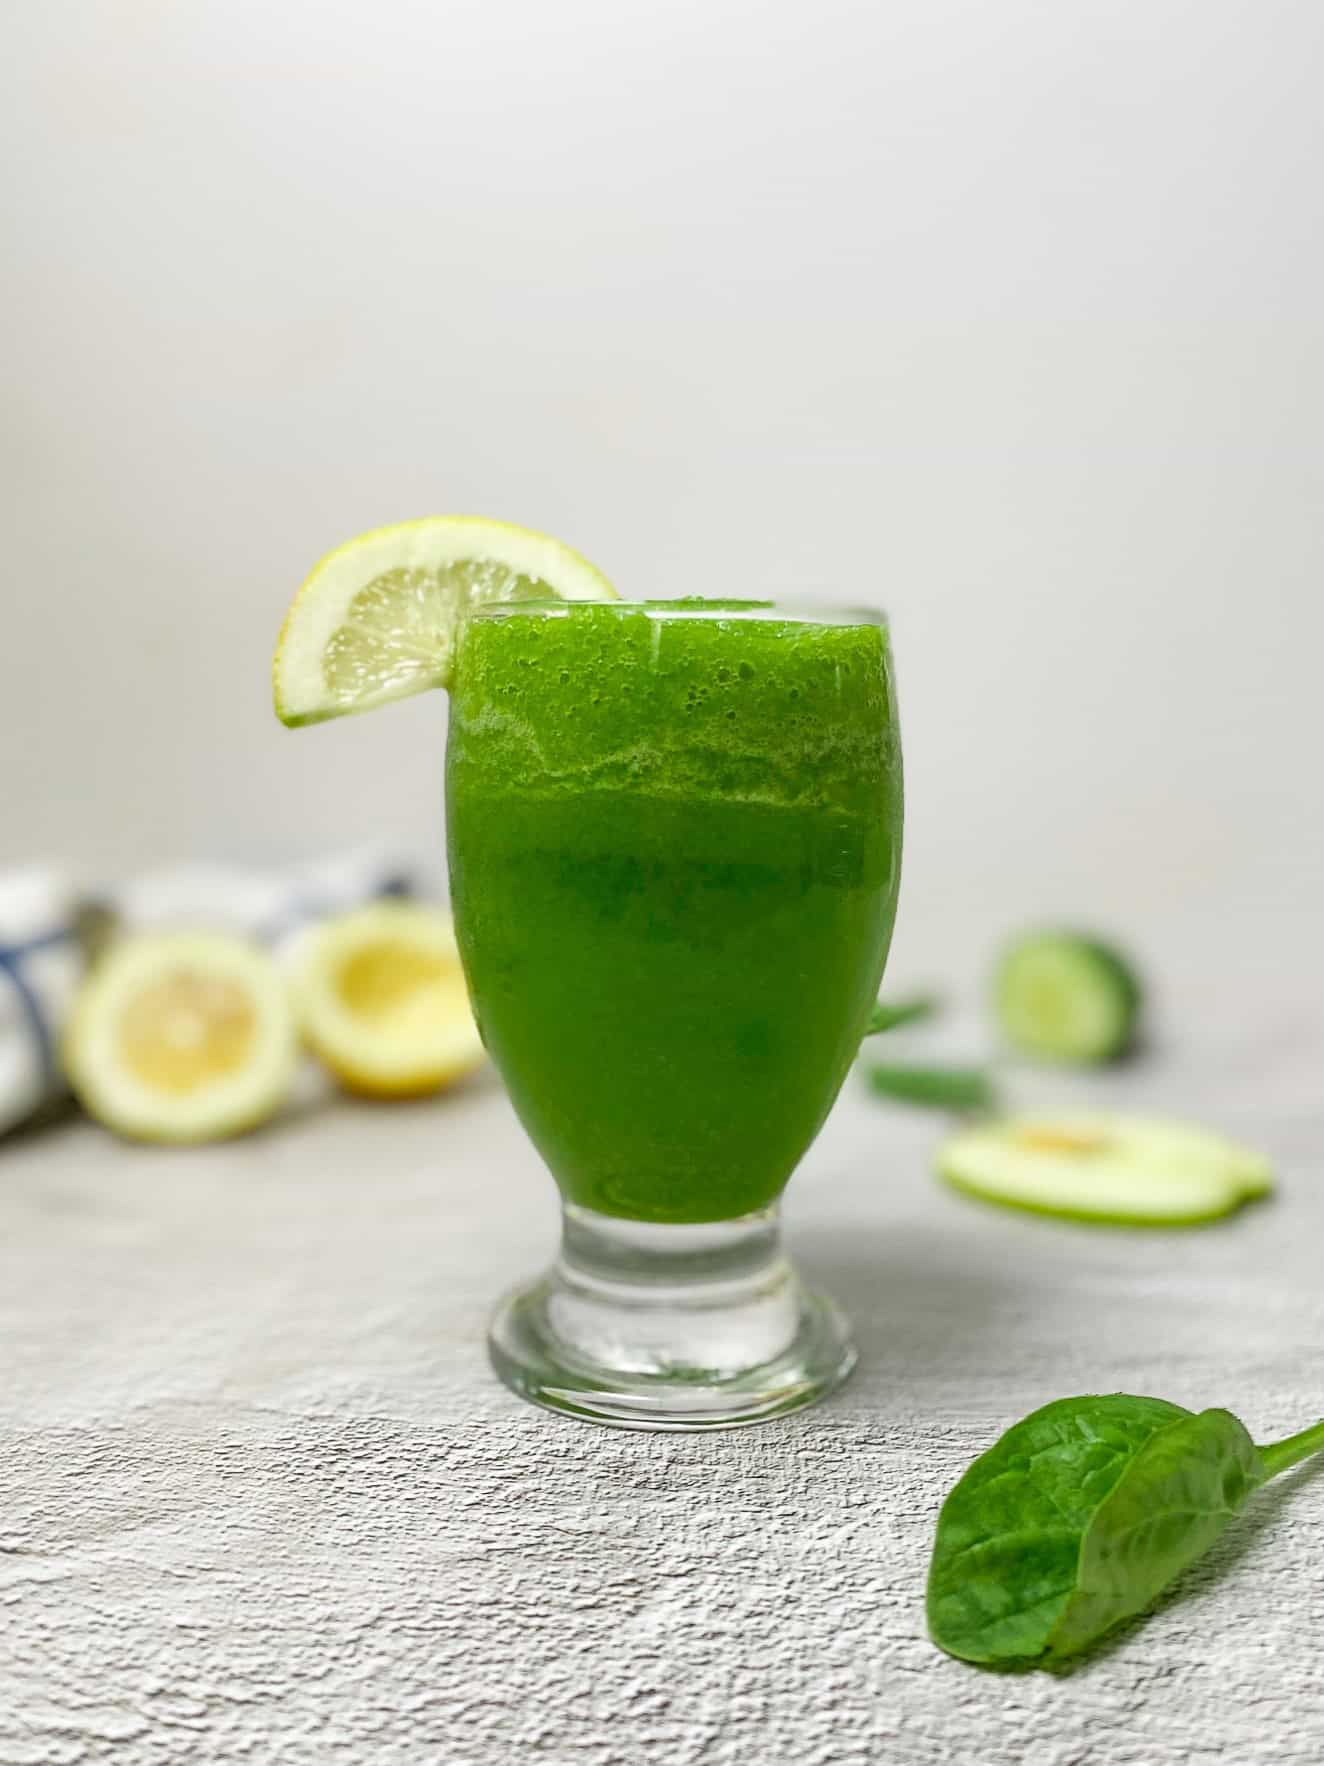 green smoothie in glass with lemon slice garnish